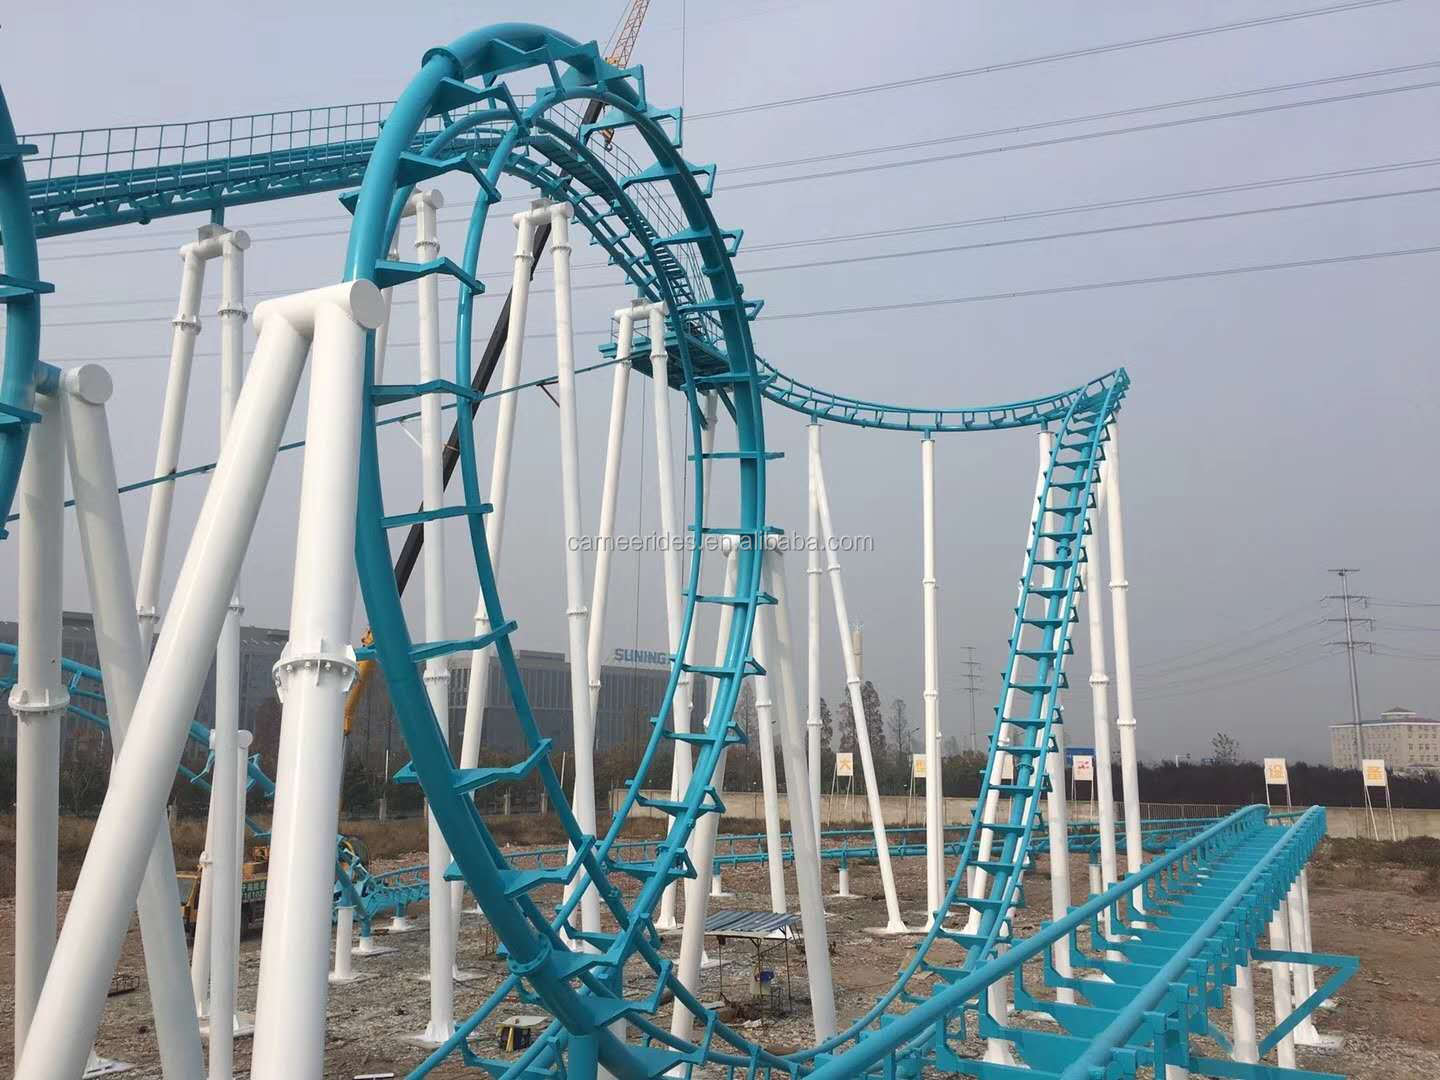 Outdoor Theme Parks Symbol Thrilling Adults Fun Rides 4 Loops Roller Coaster